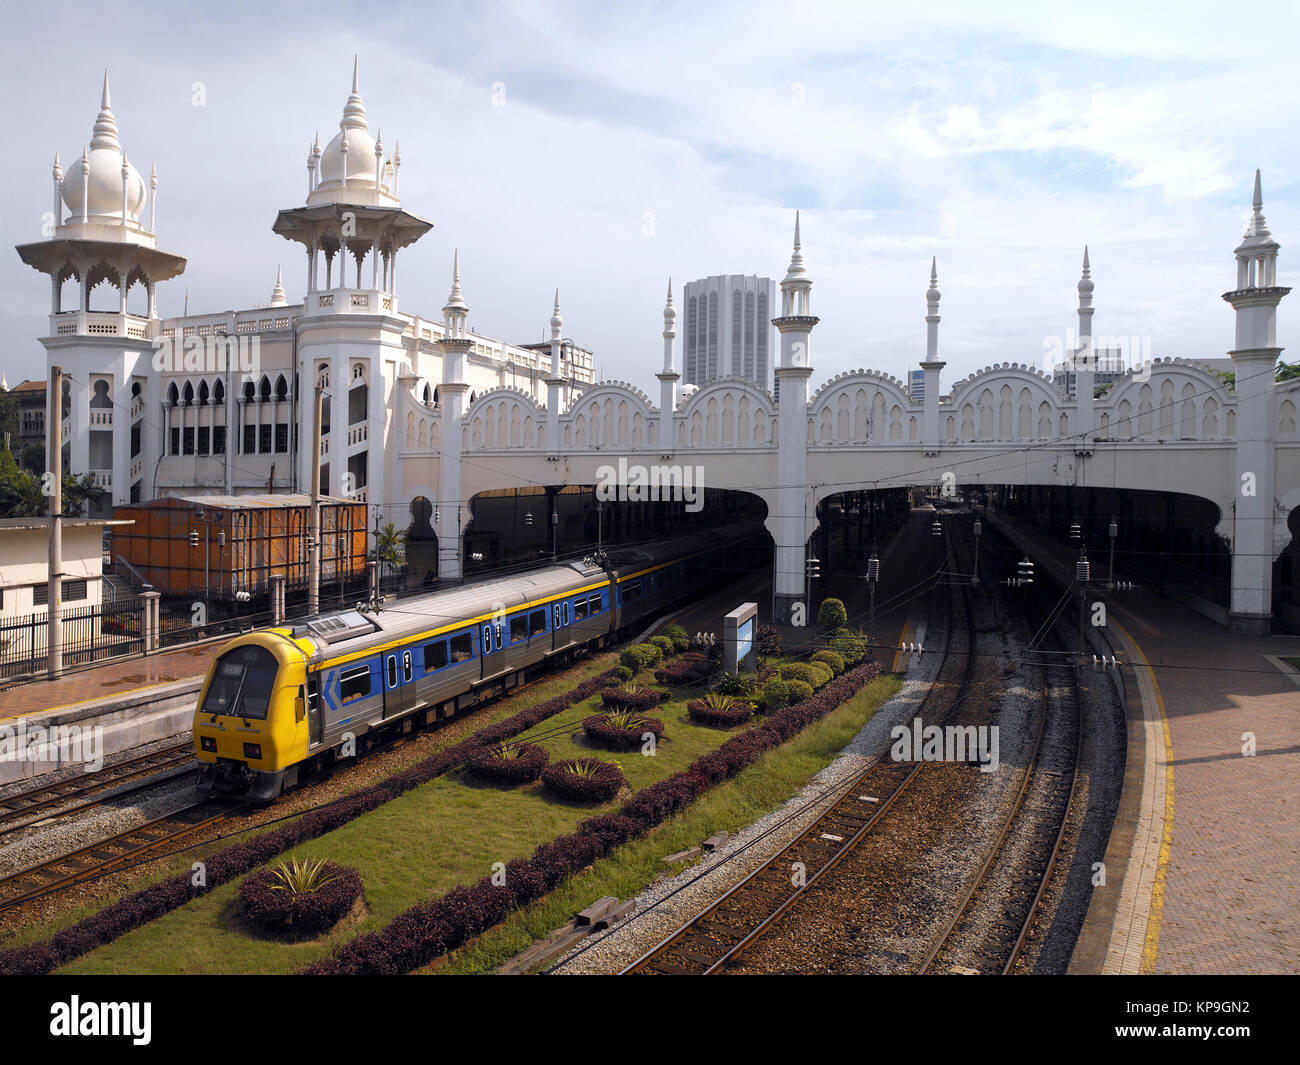 The main railway station in the city of Kuala Lumpar in Malaysia. - Stock Image